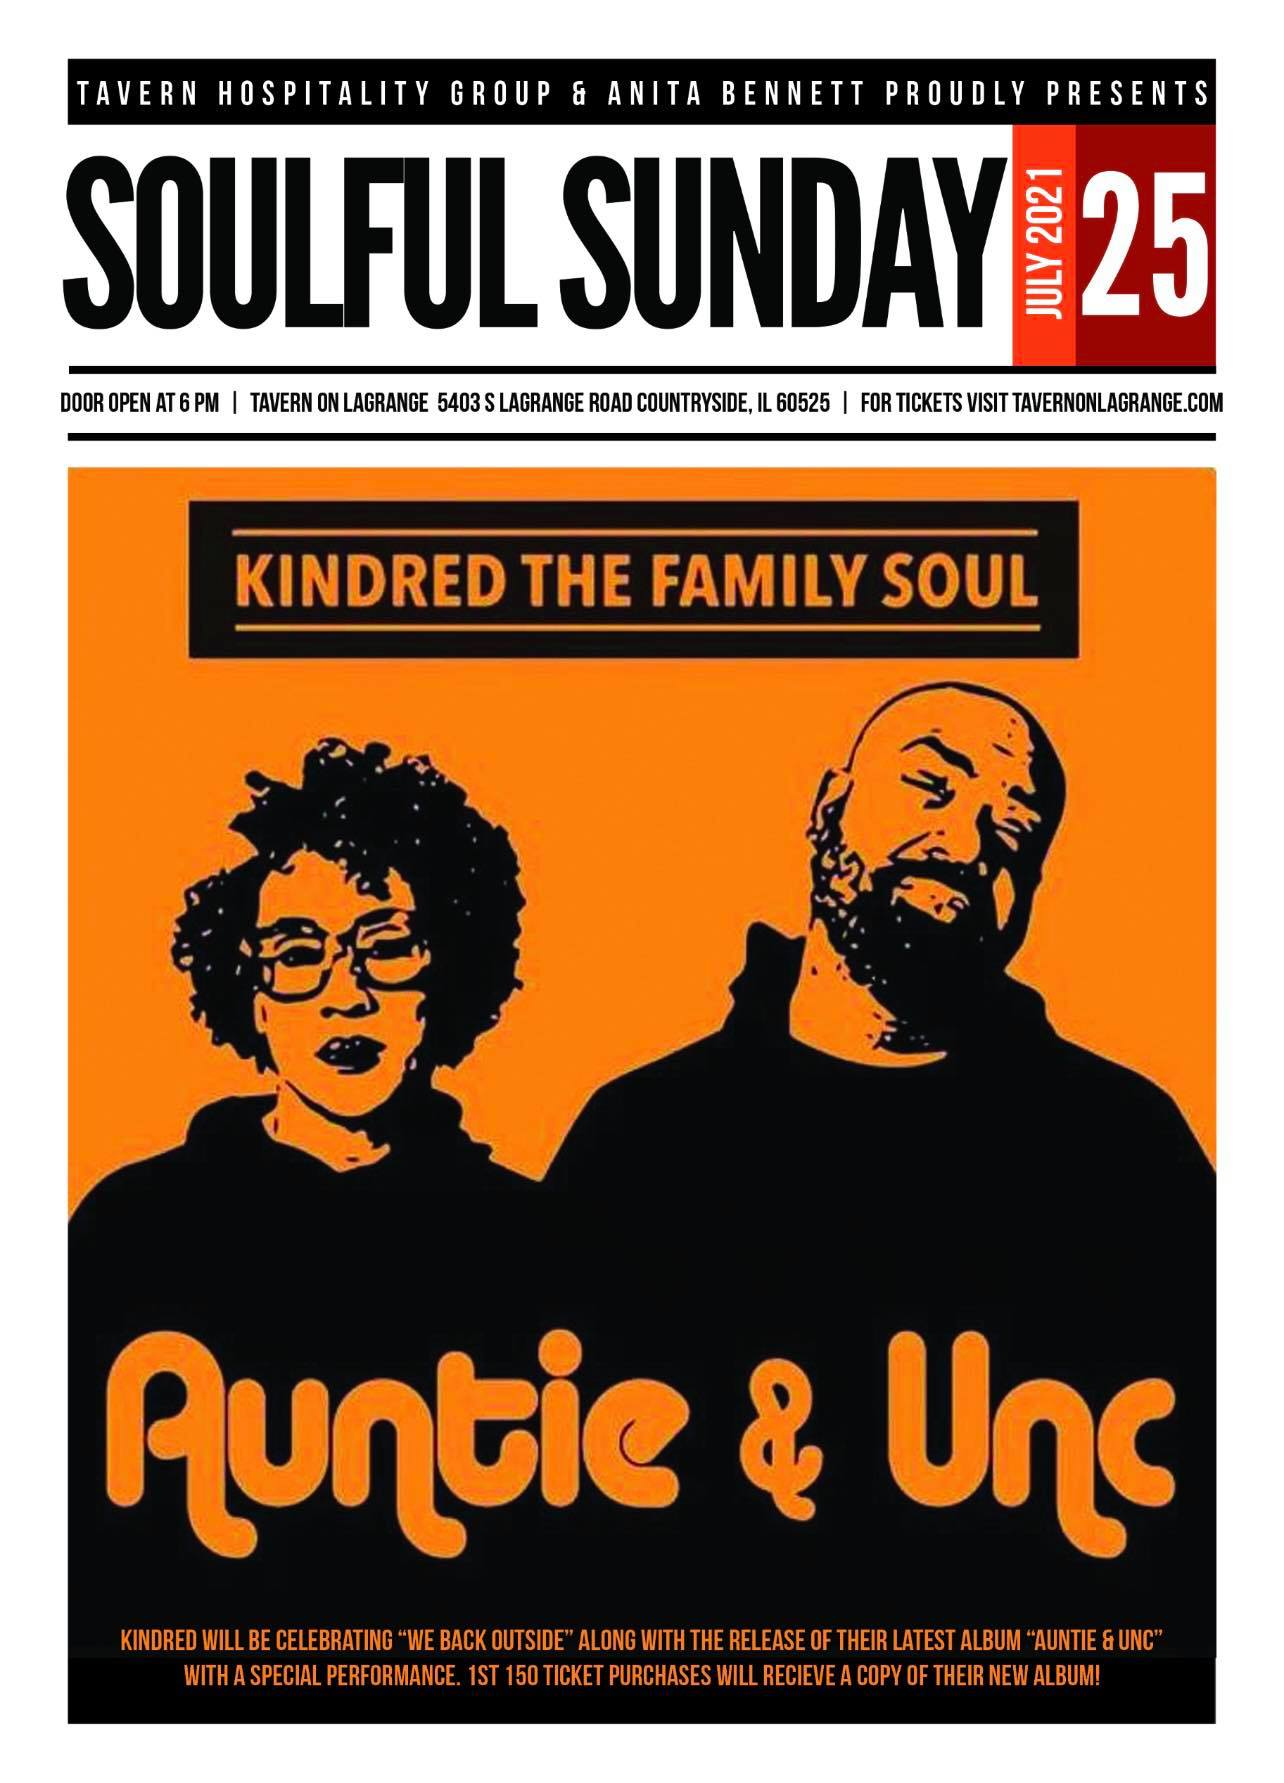 Soulful Sunday: Starring Kindred The Family Soul!